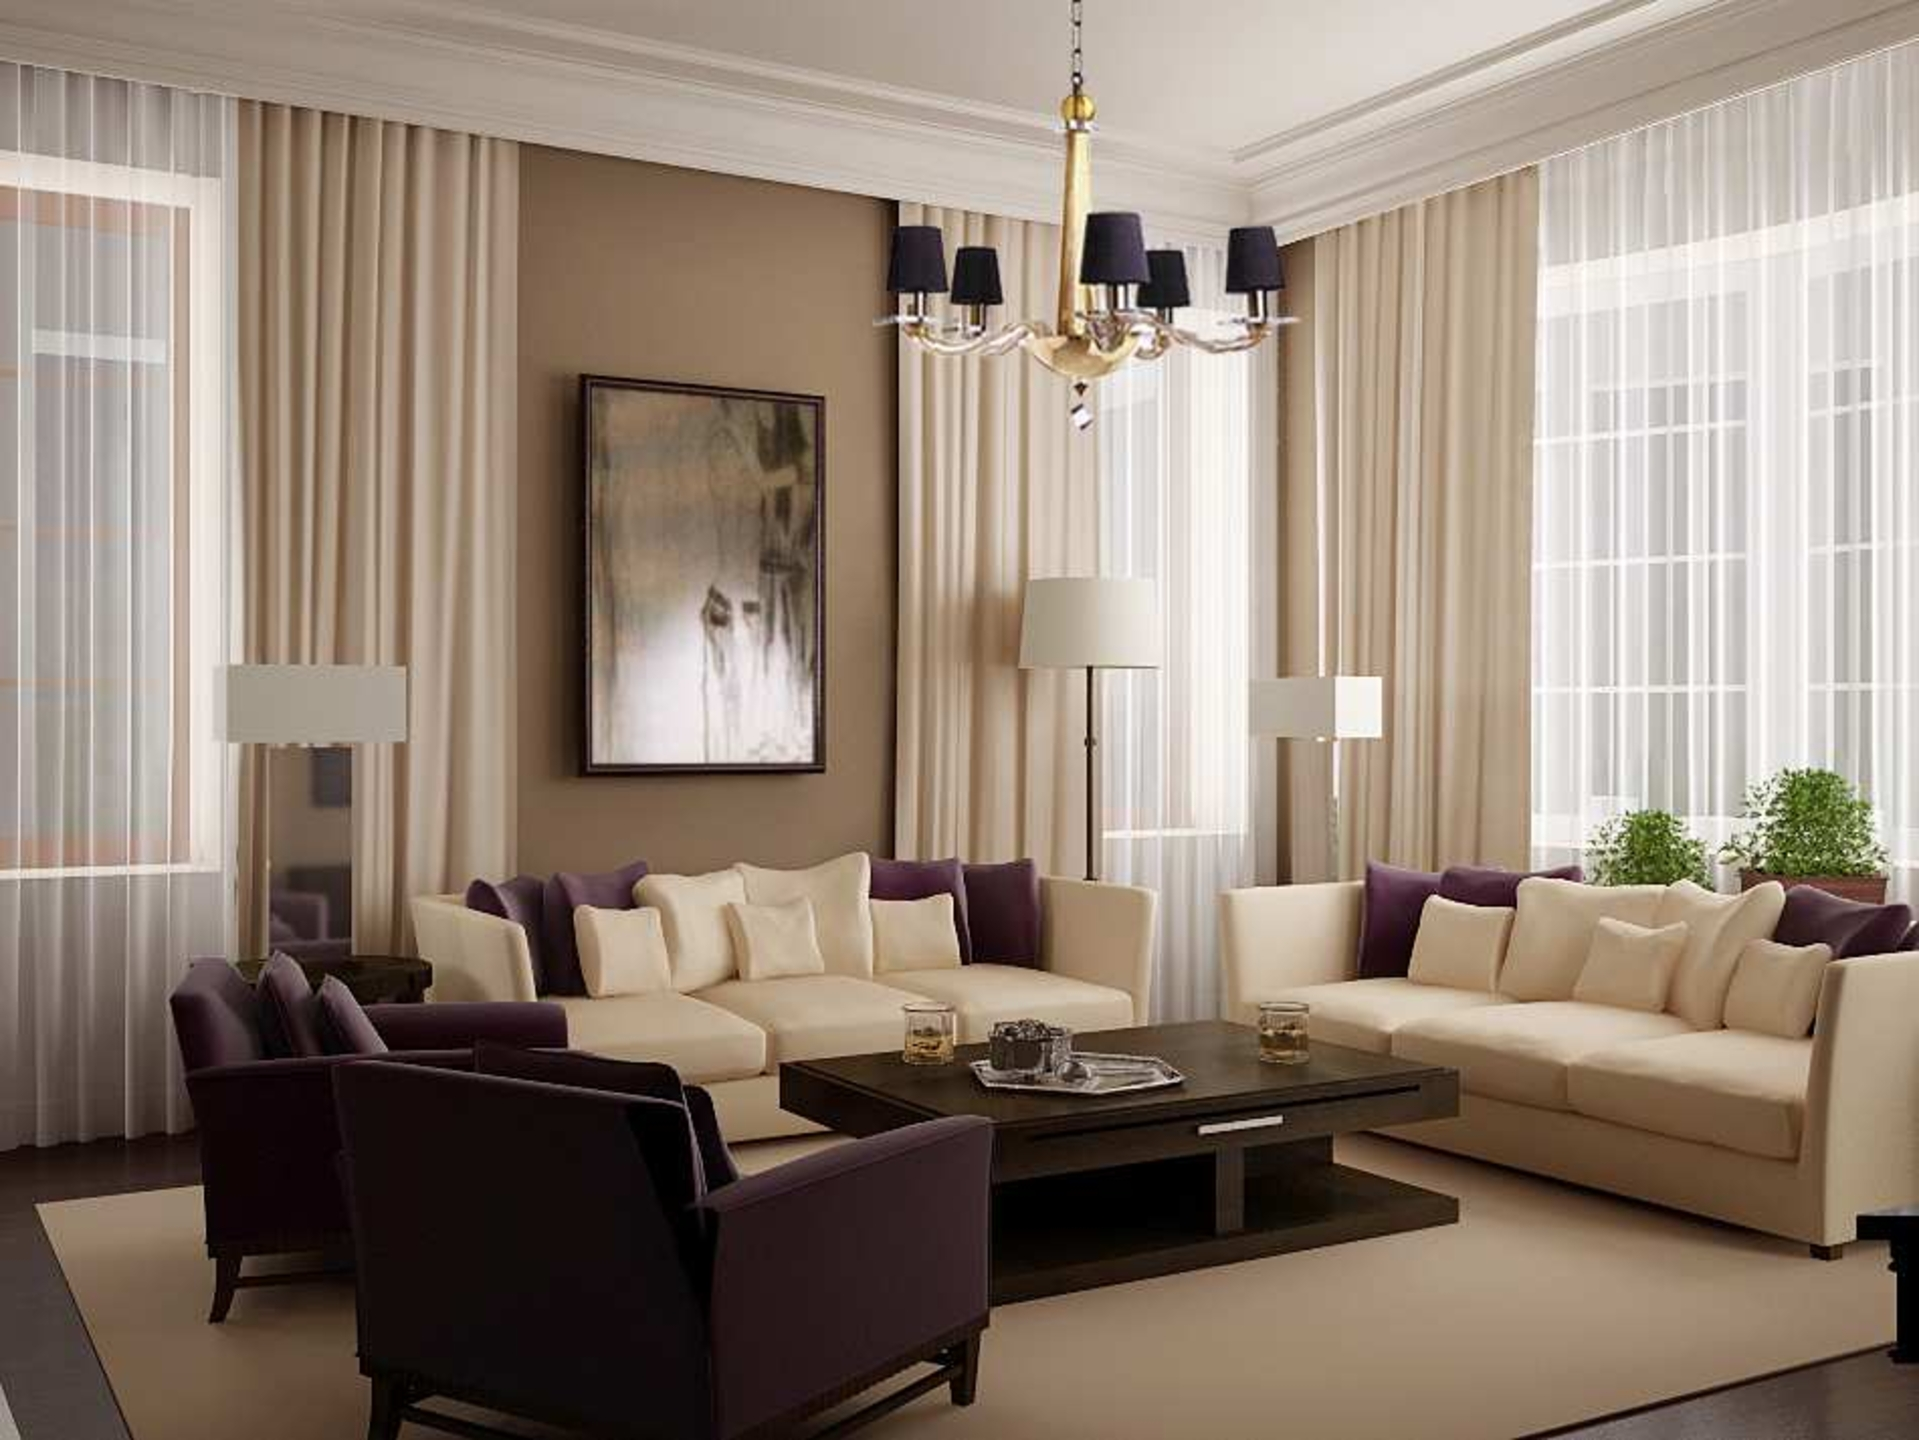 Of Curtains For Living Room 17 Trendy Curtains For The Living Room That Will Attract Your